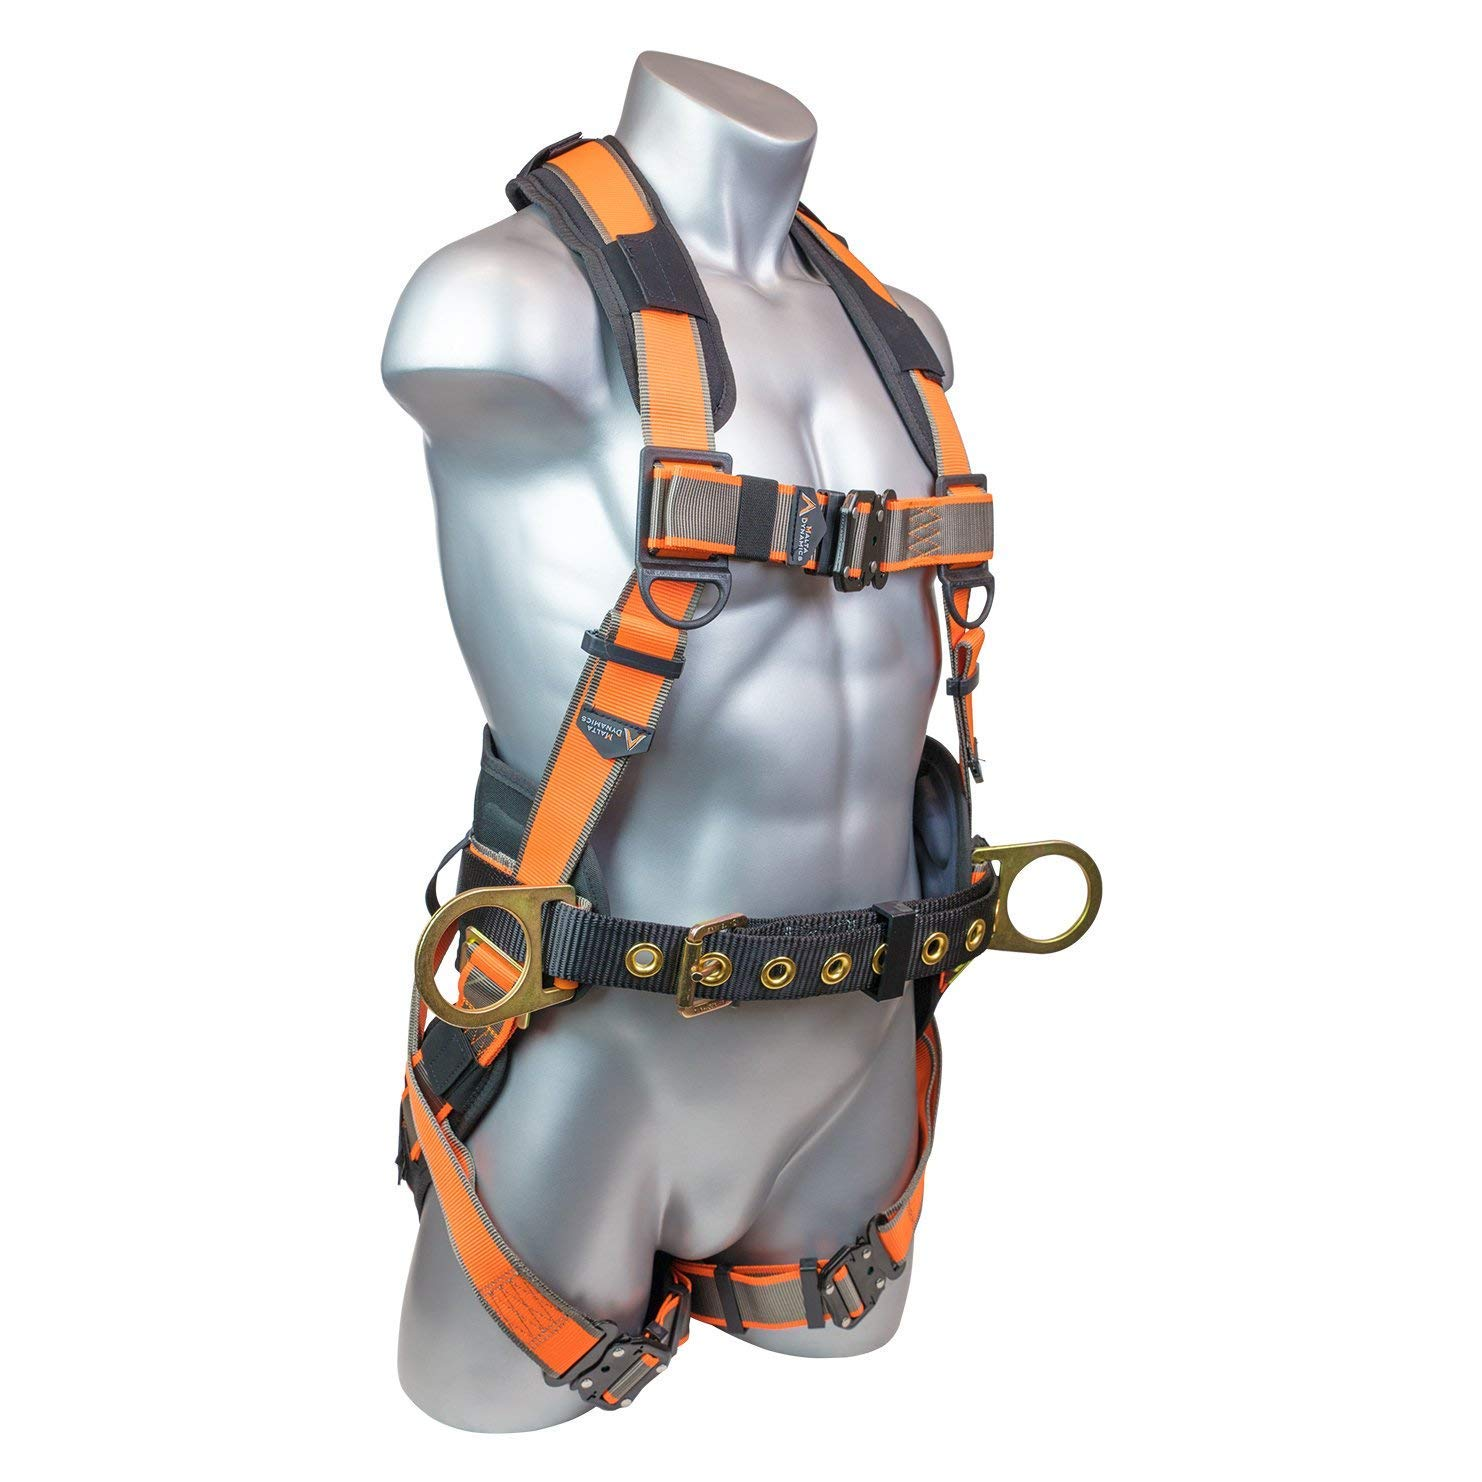 Warthog MAXX Comfort Construction Harness with Belt, Side D-Rings and Additional Padding(XL-XXL)